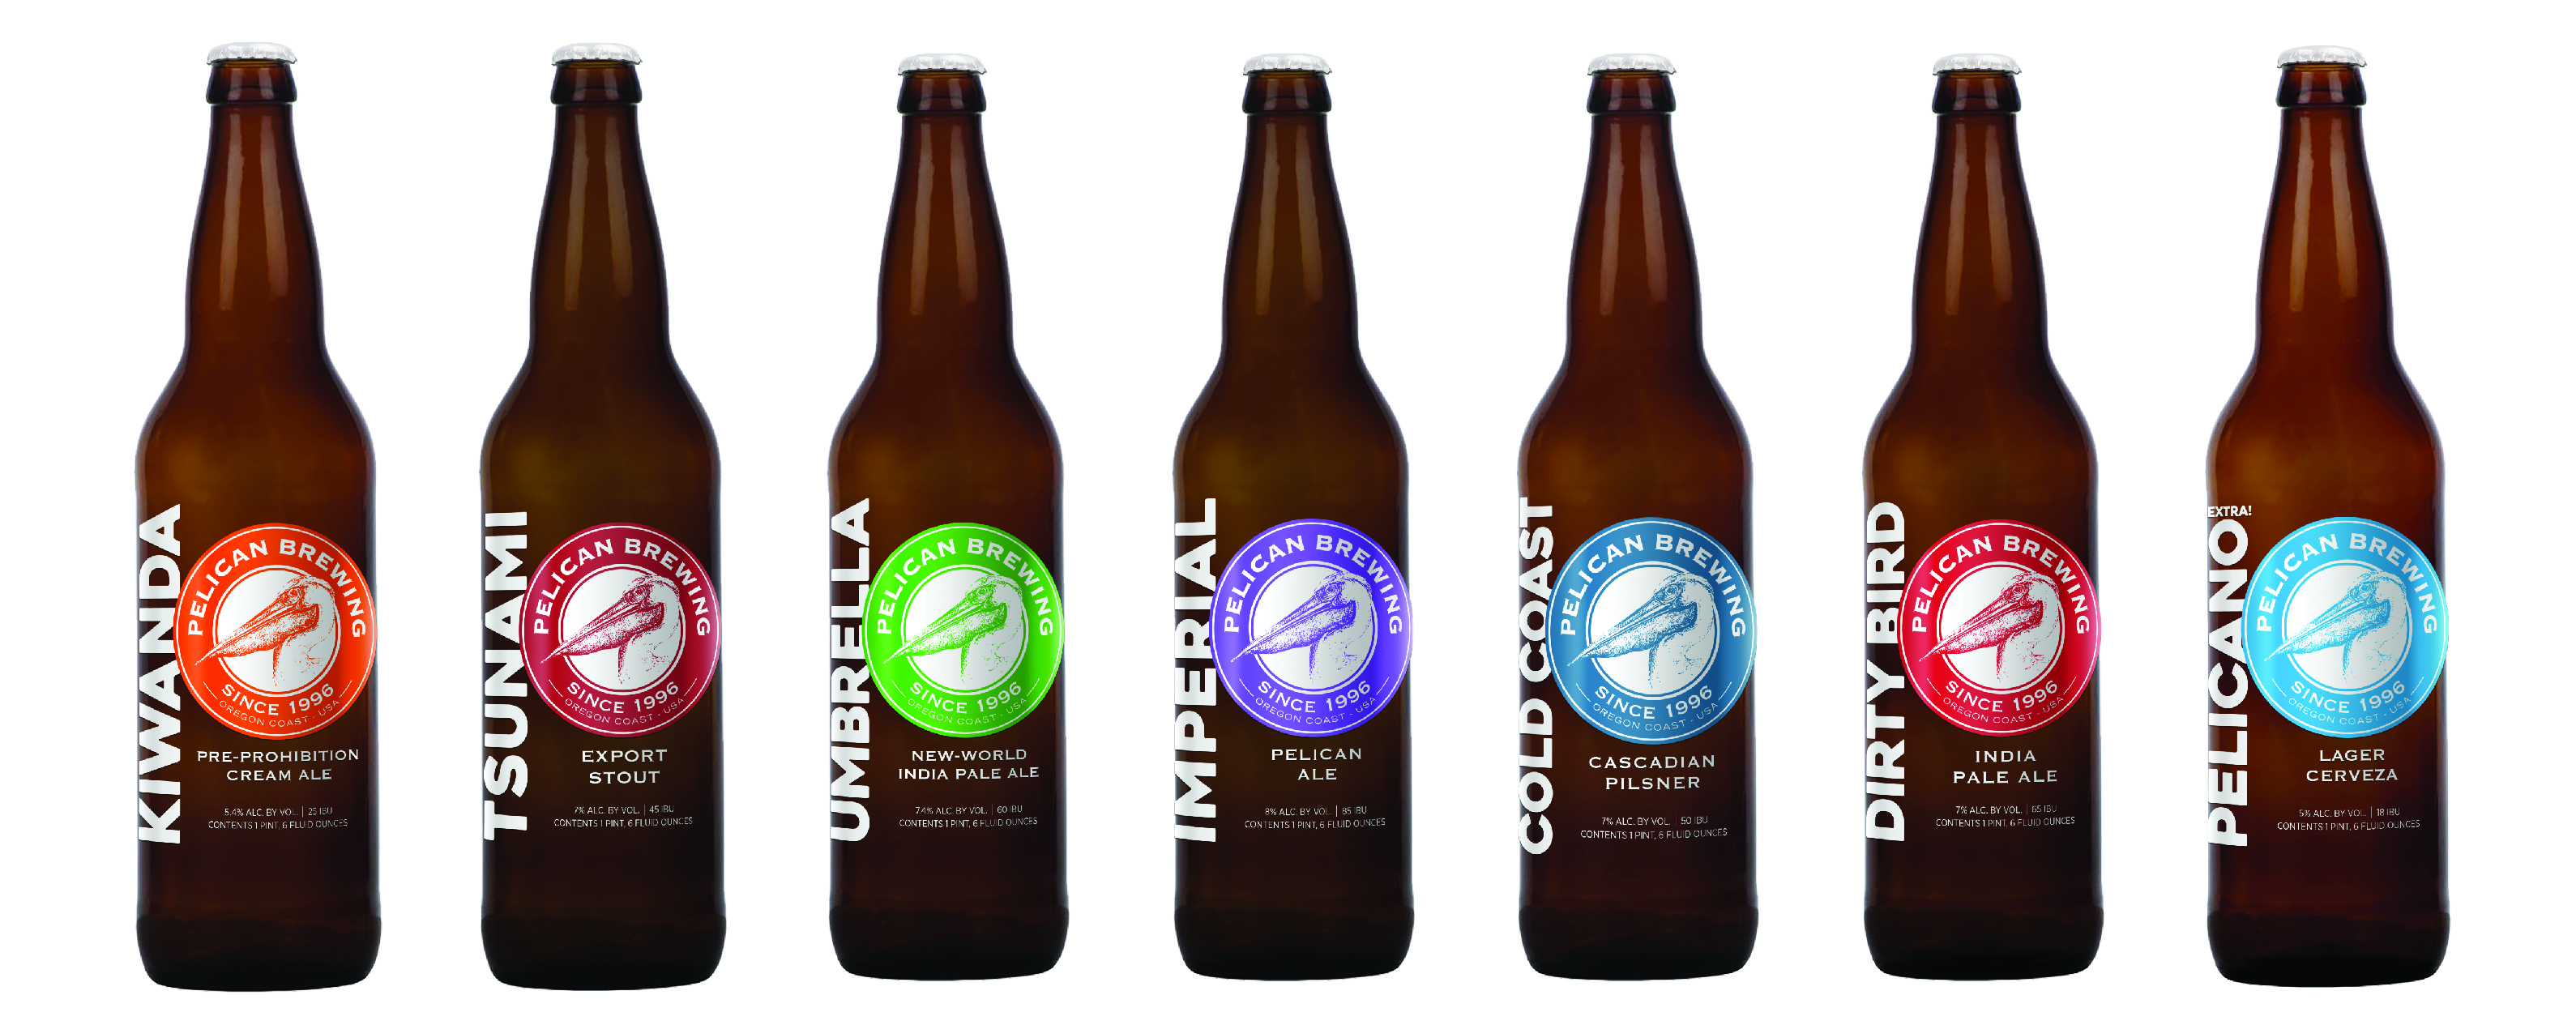 pelican brewing company unveils brand refresh to reflect its coastal roots and intentional